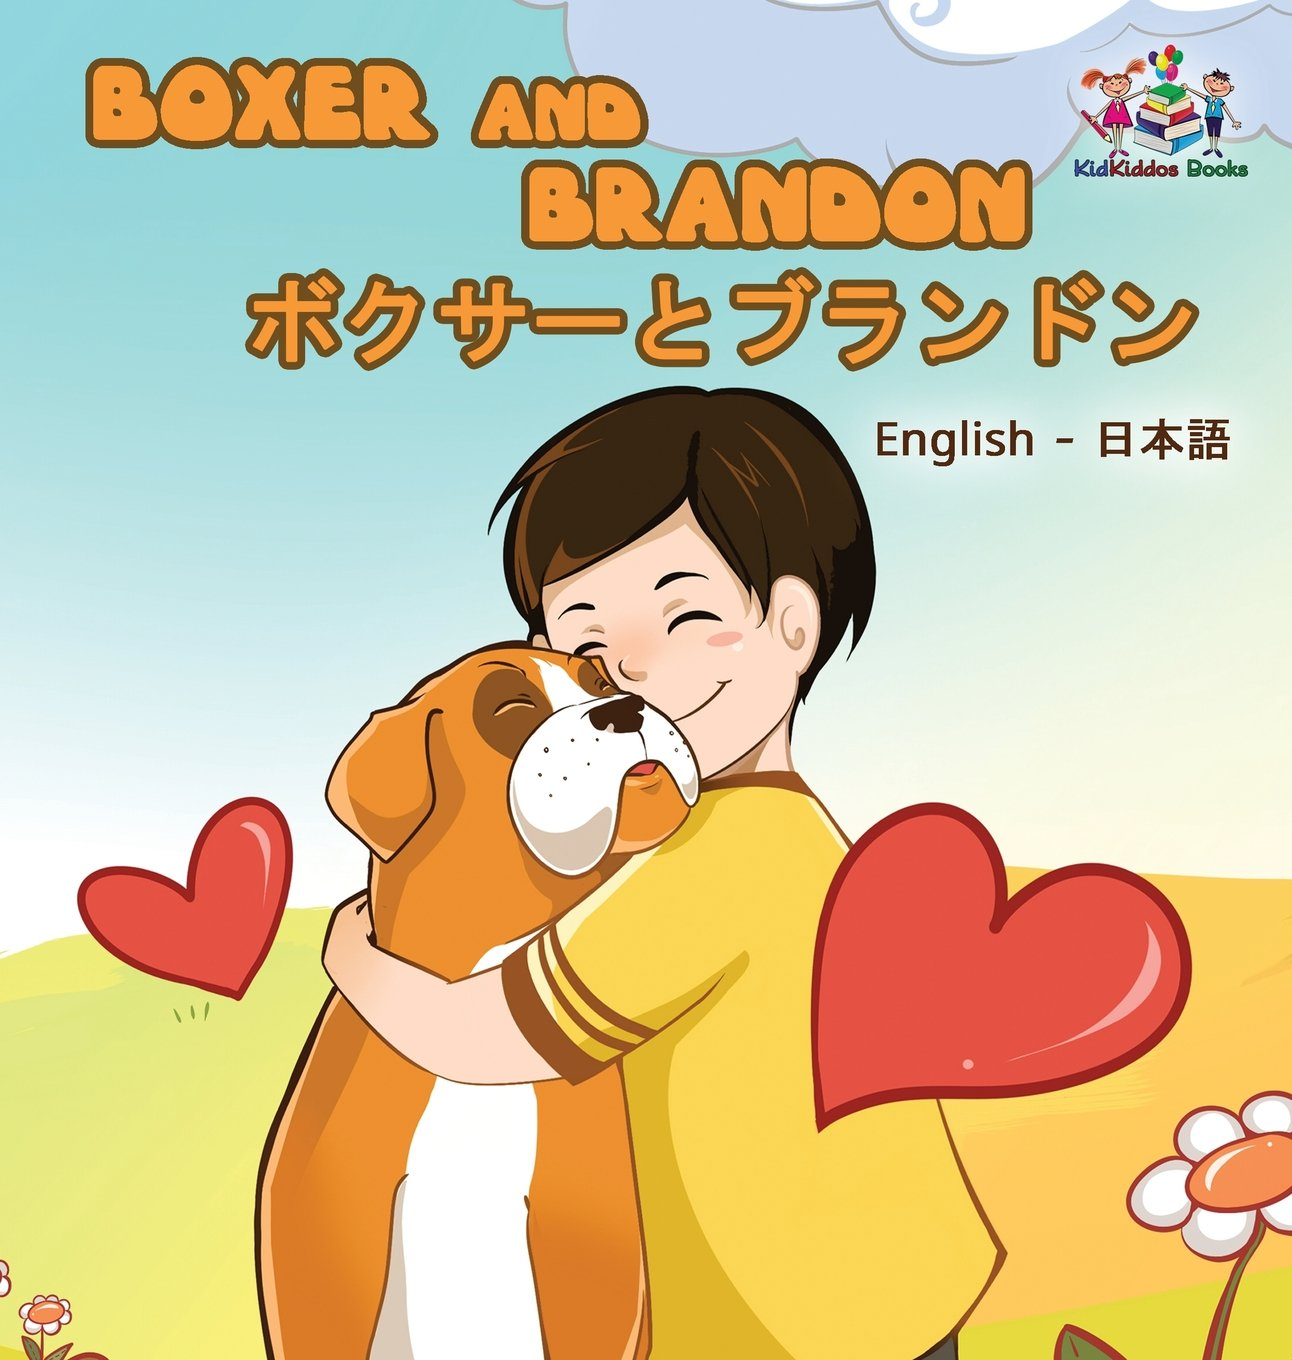 Boxer and Brandon (English Japanese Children's Book): Bilingual Japanese Book (English Japanese Bilingual Collection) (Japanese Edition) pdf